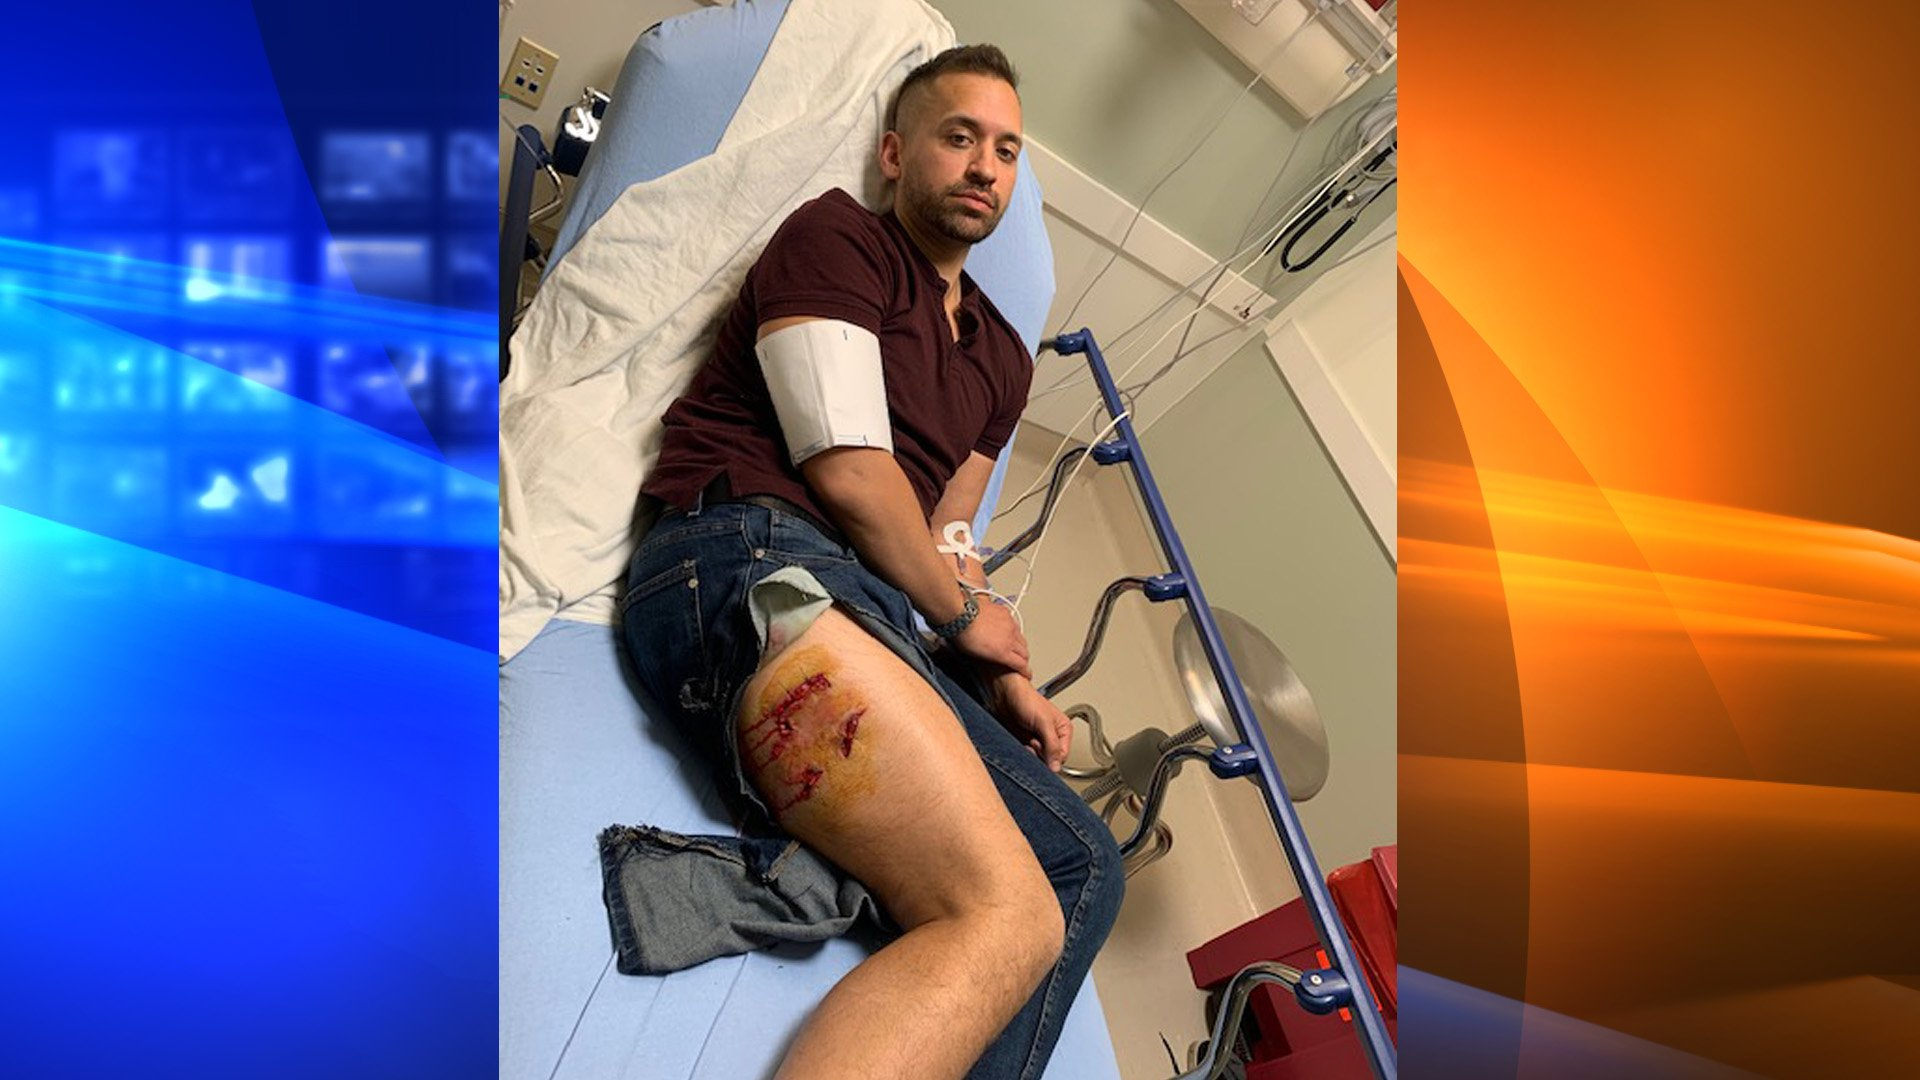 Matthew Gutierrez is pictured at the hospital after he was attacked by a pit bull on Feb. 11, 2020.